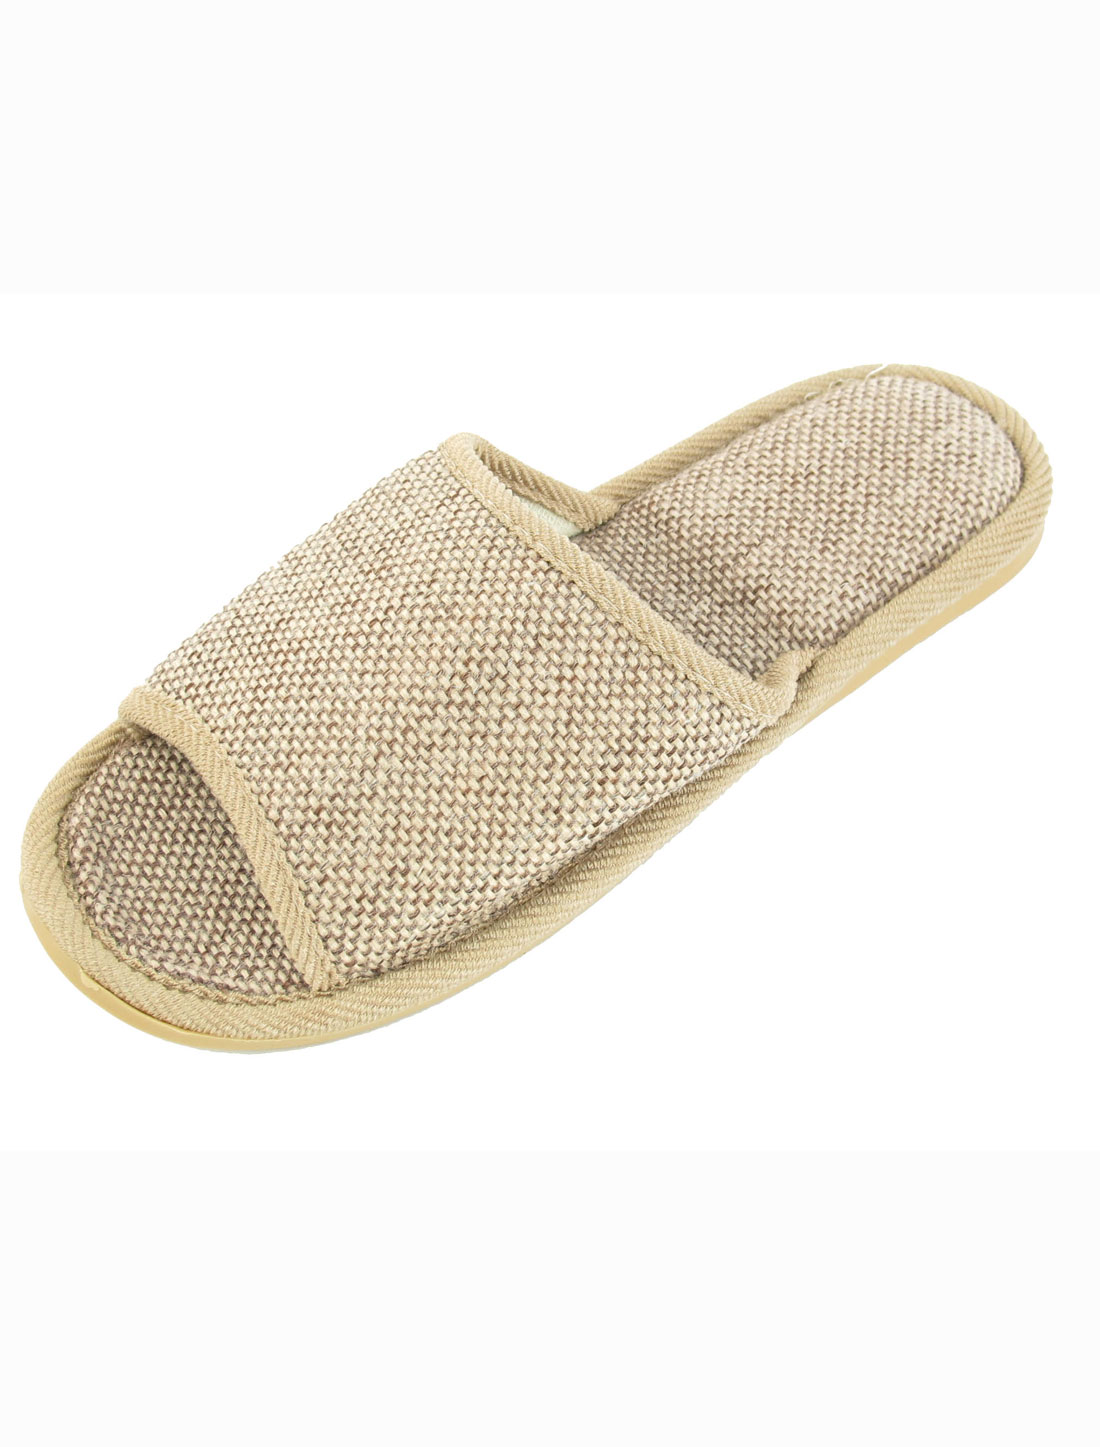 Home Open Heel Nonslip Linen Slippers Khaki for Man US 8